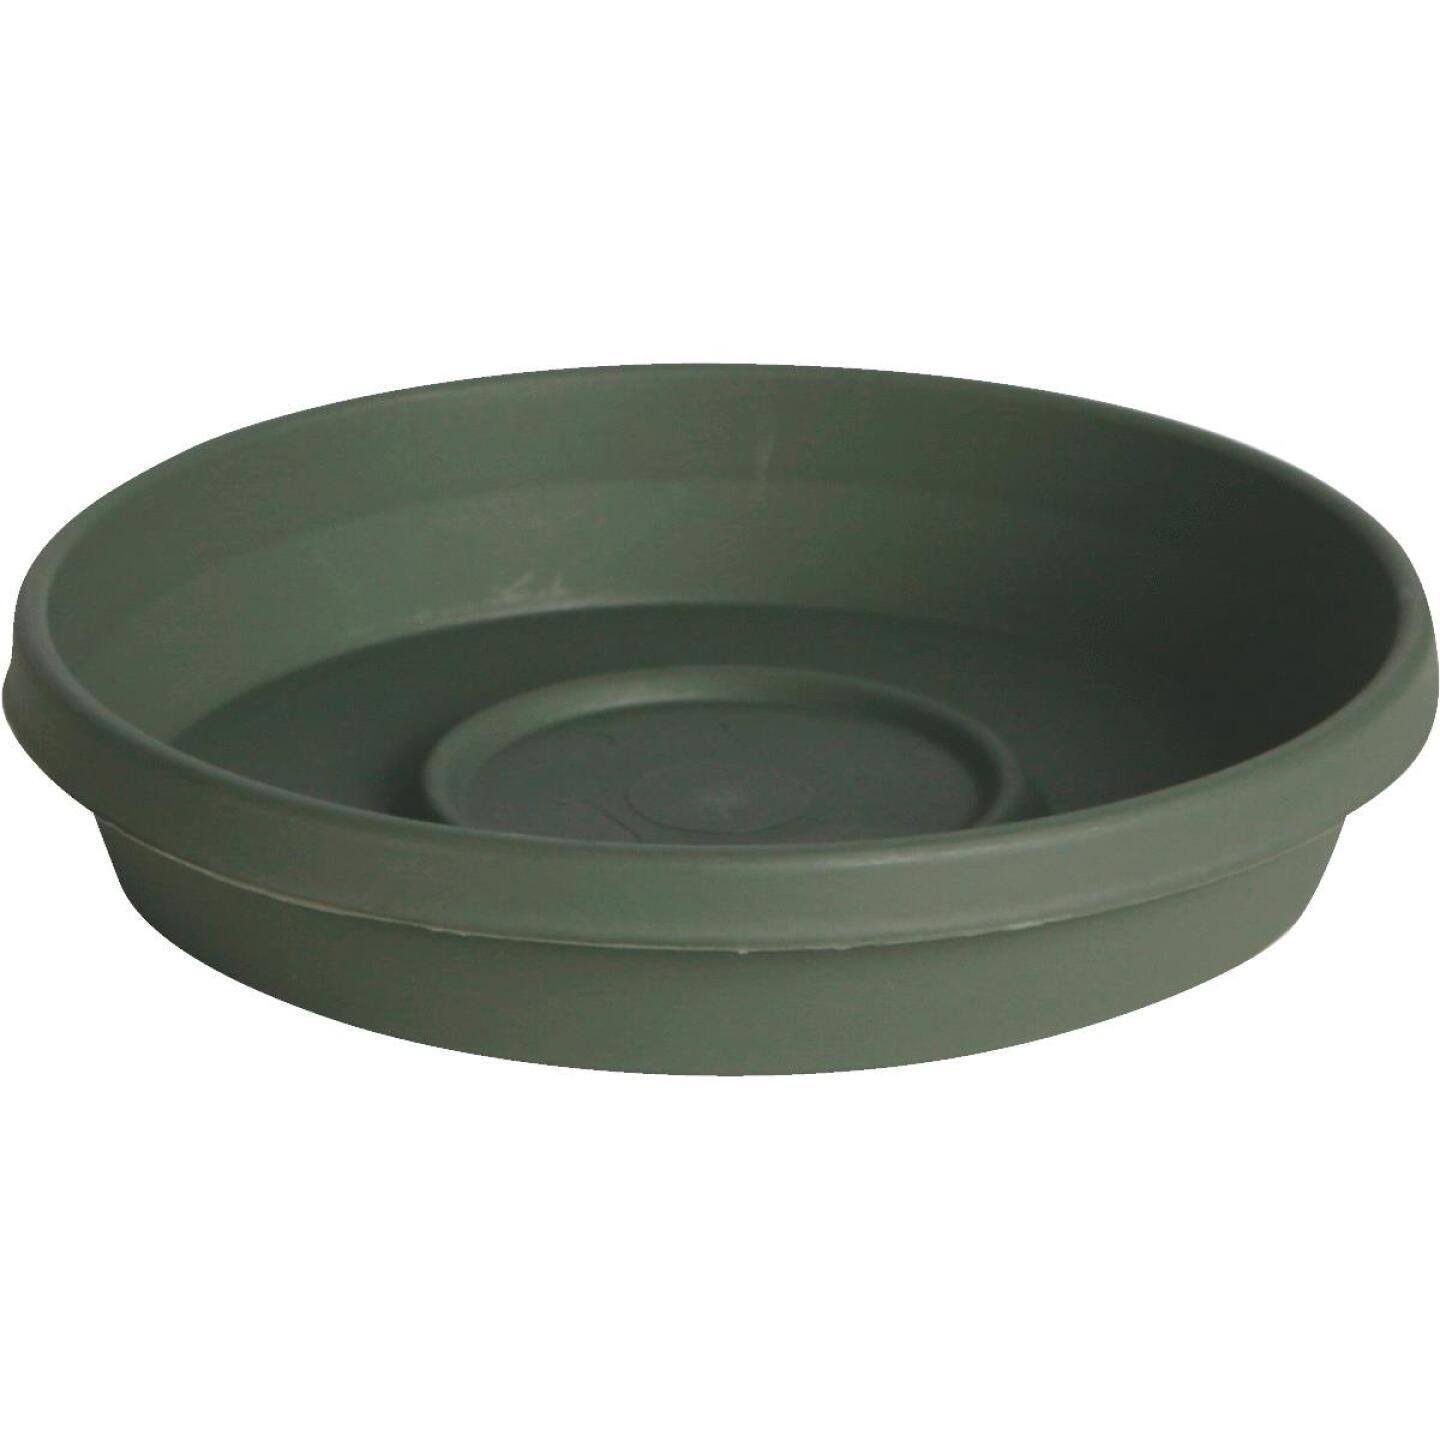 Bloem Terra Living Green 14 In. Plastic Flower Pot Saucer Image 1